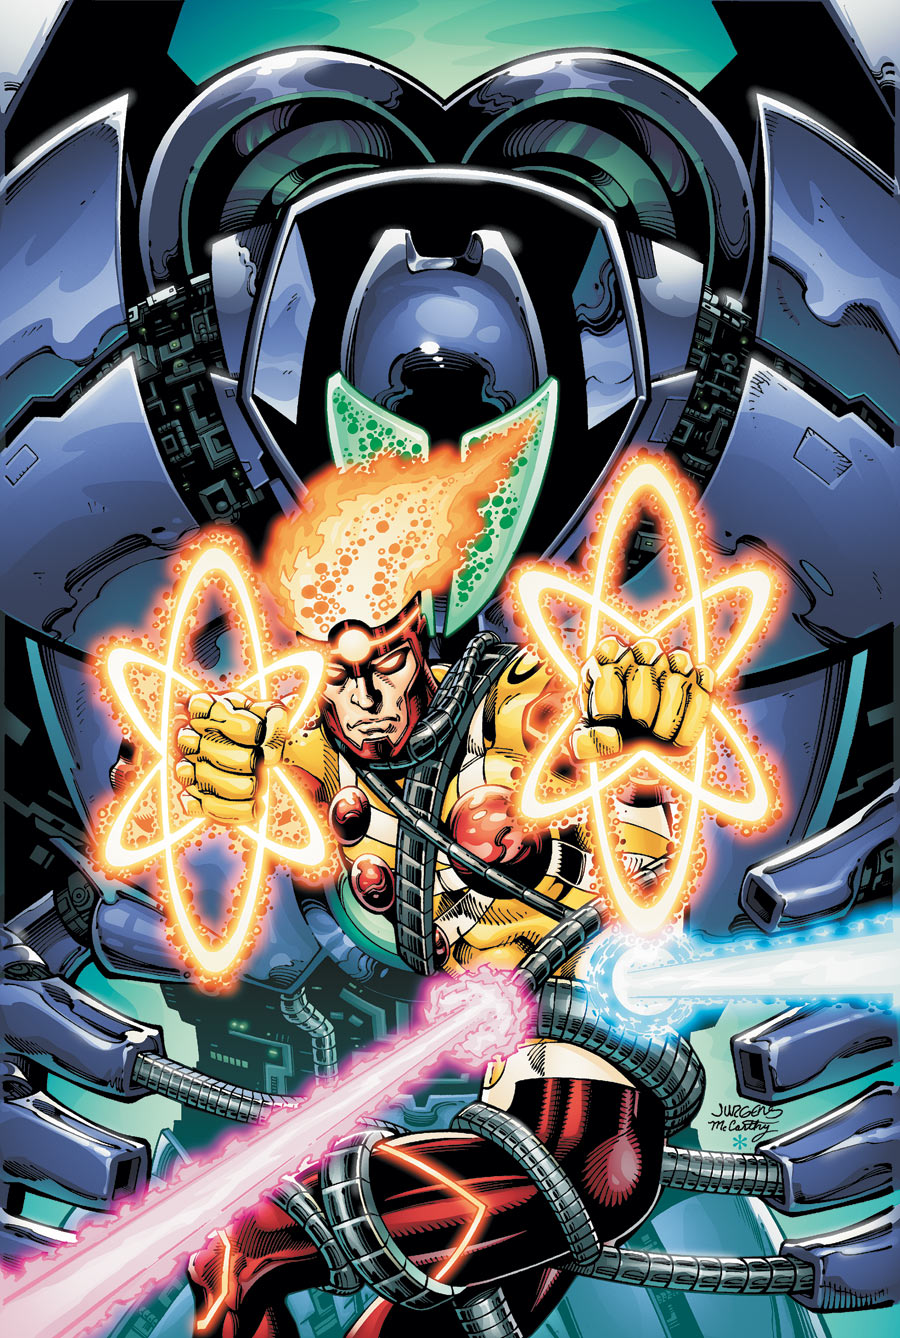 Fury of Firestorm The Nuclear Man #16 cover by Dan Jurgens and Ray McCarthy